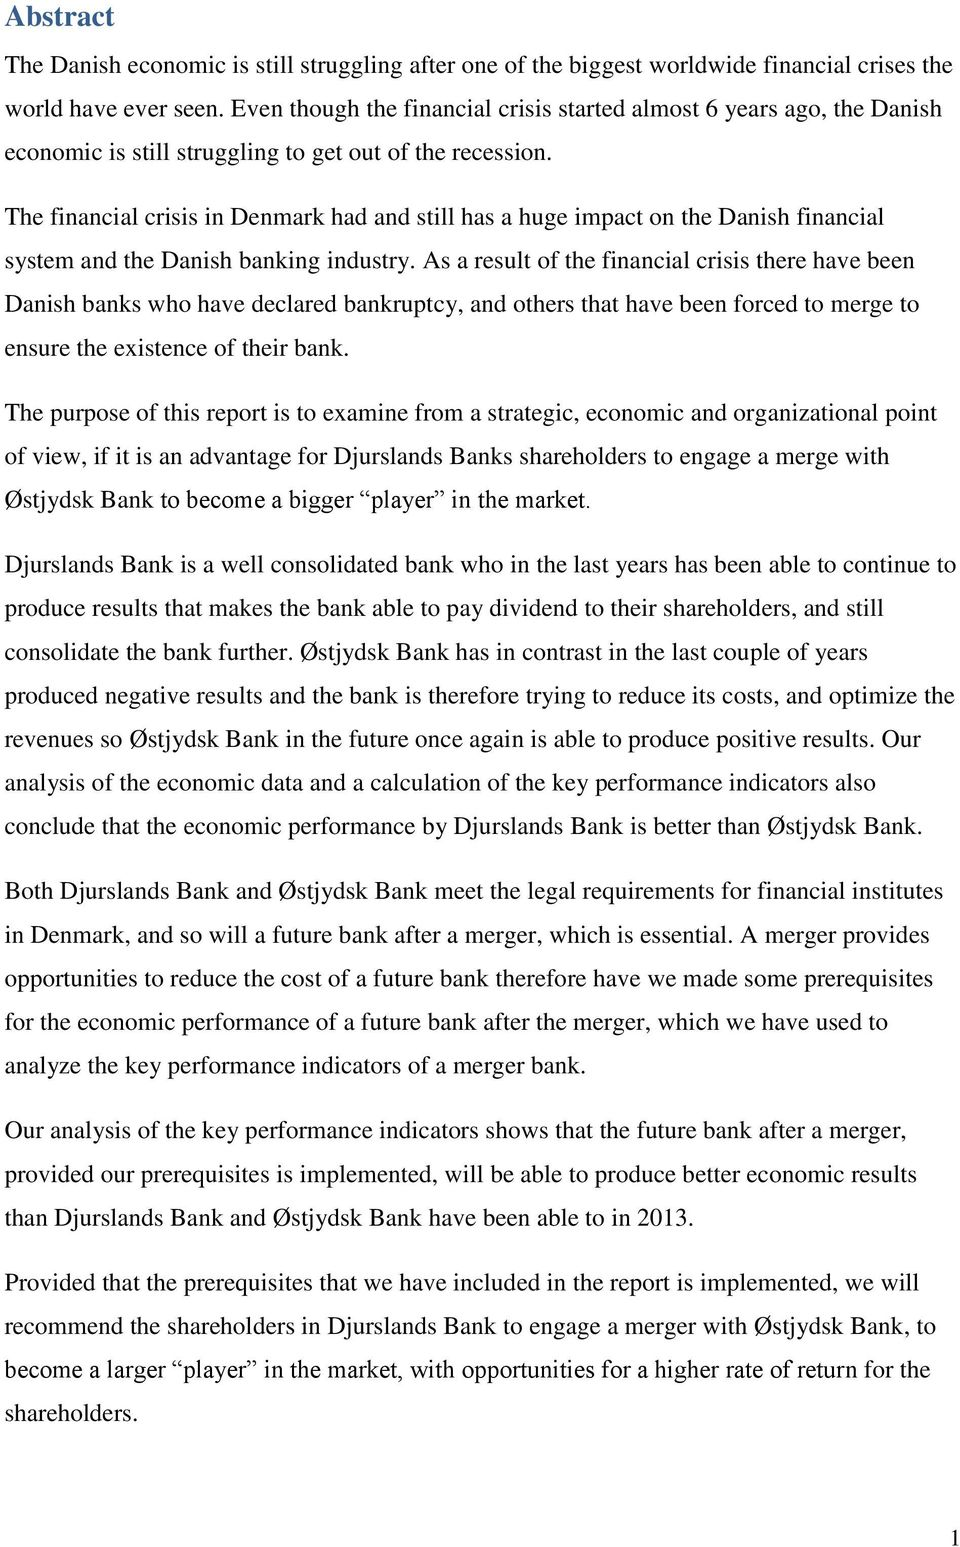 The financial crisis in Denmark had and still has a huge impact on the Danish financial system and the Danish banking industry.